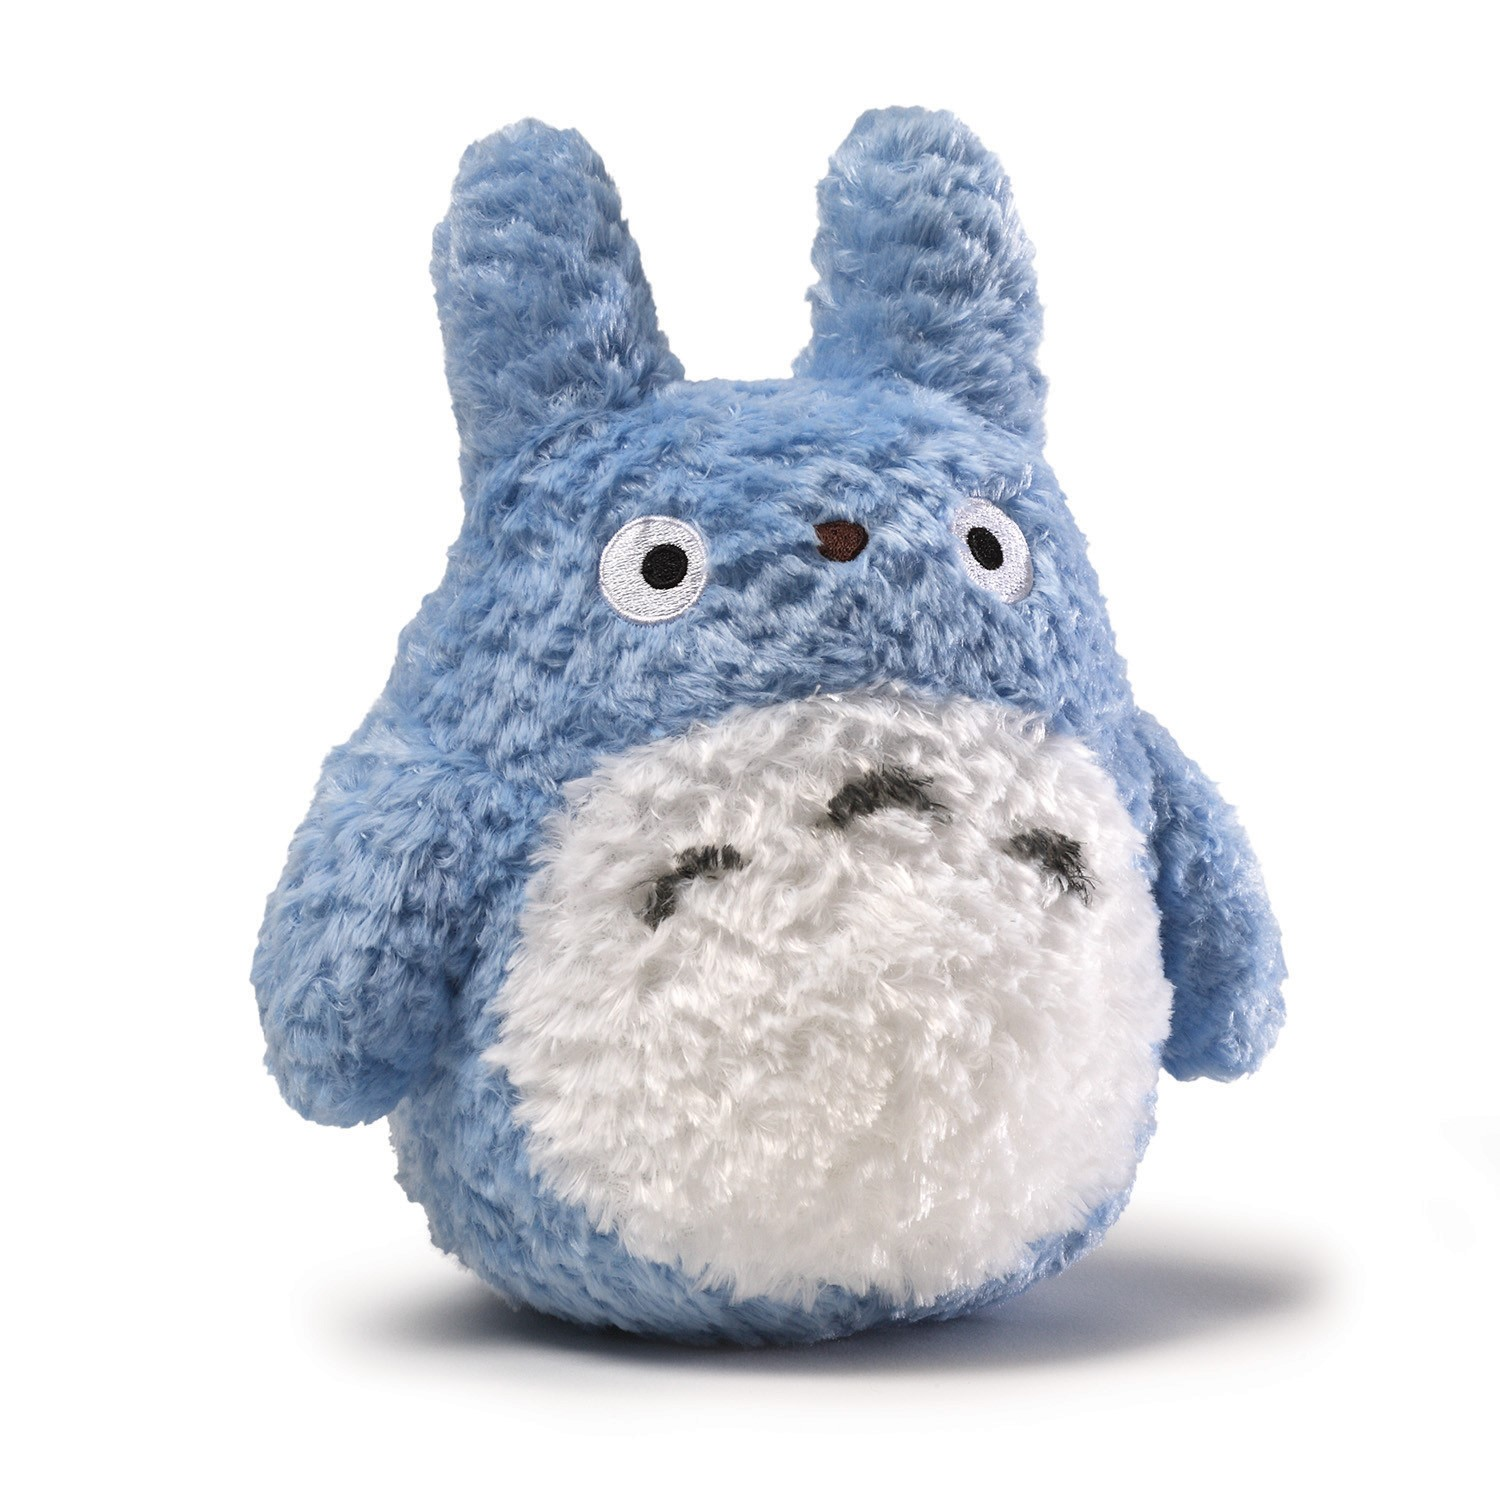 "My Neighbor Totoro: 8"" Blue Fluffy Medium Totoro Plush"